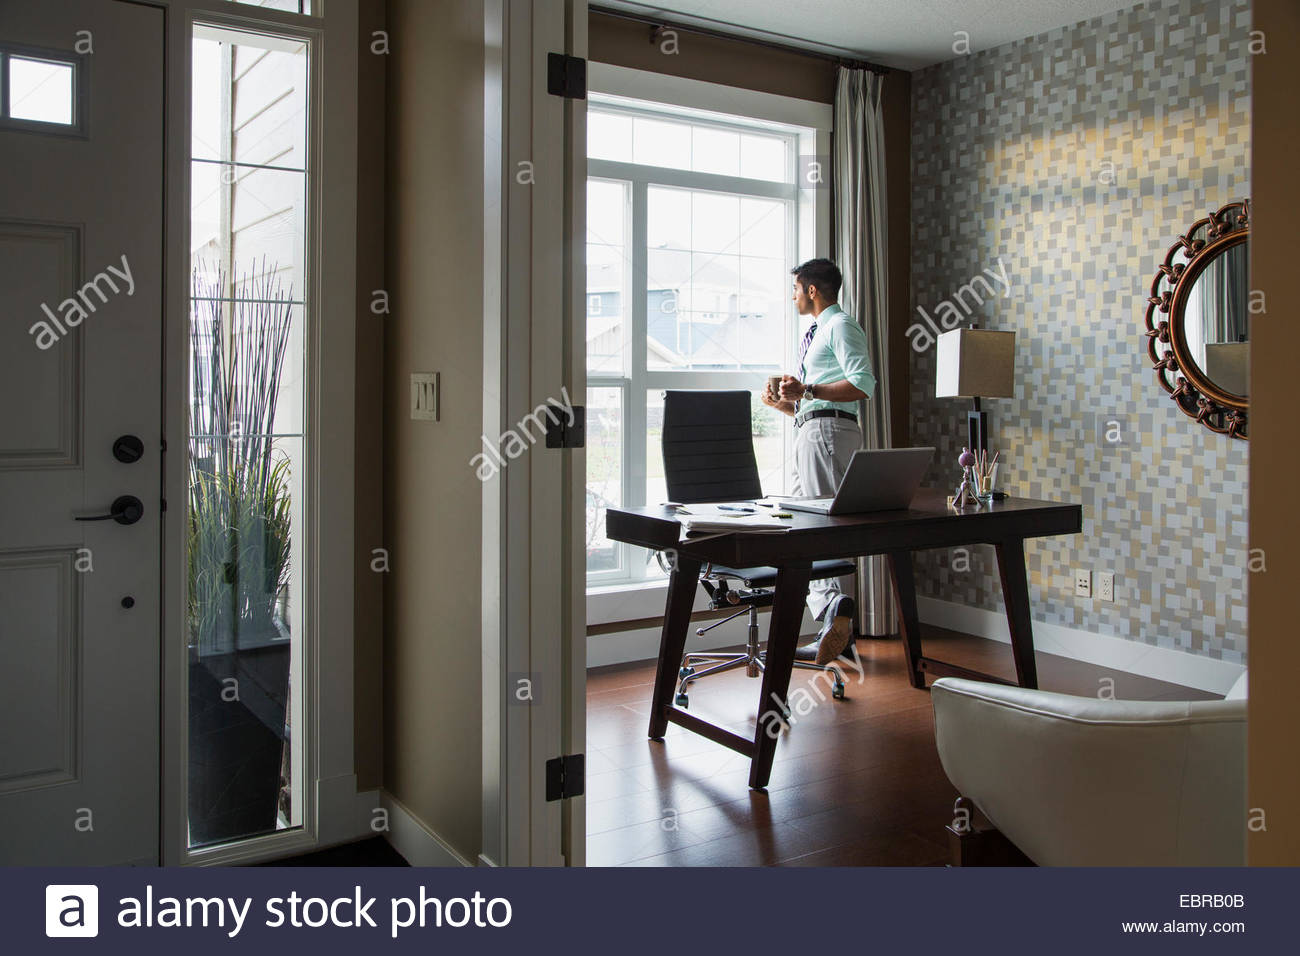 Man drinking coffee at home office window - Stock Image